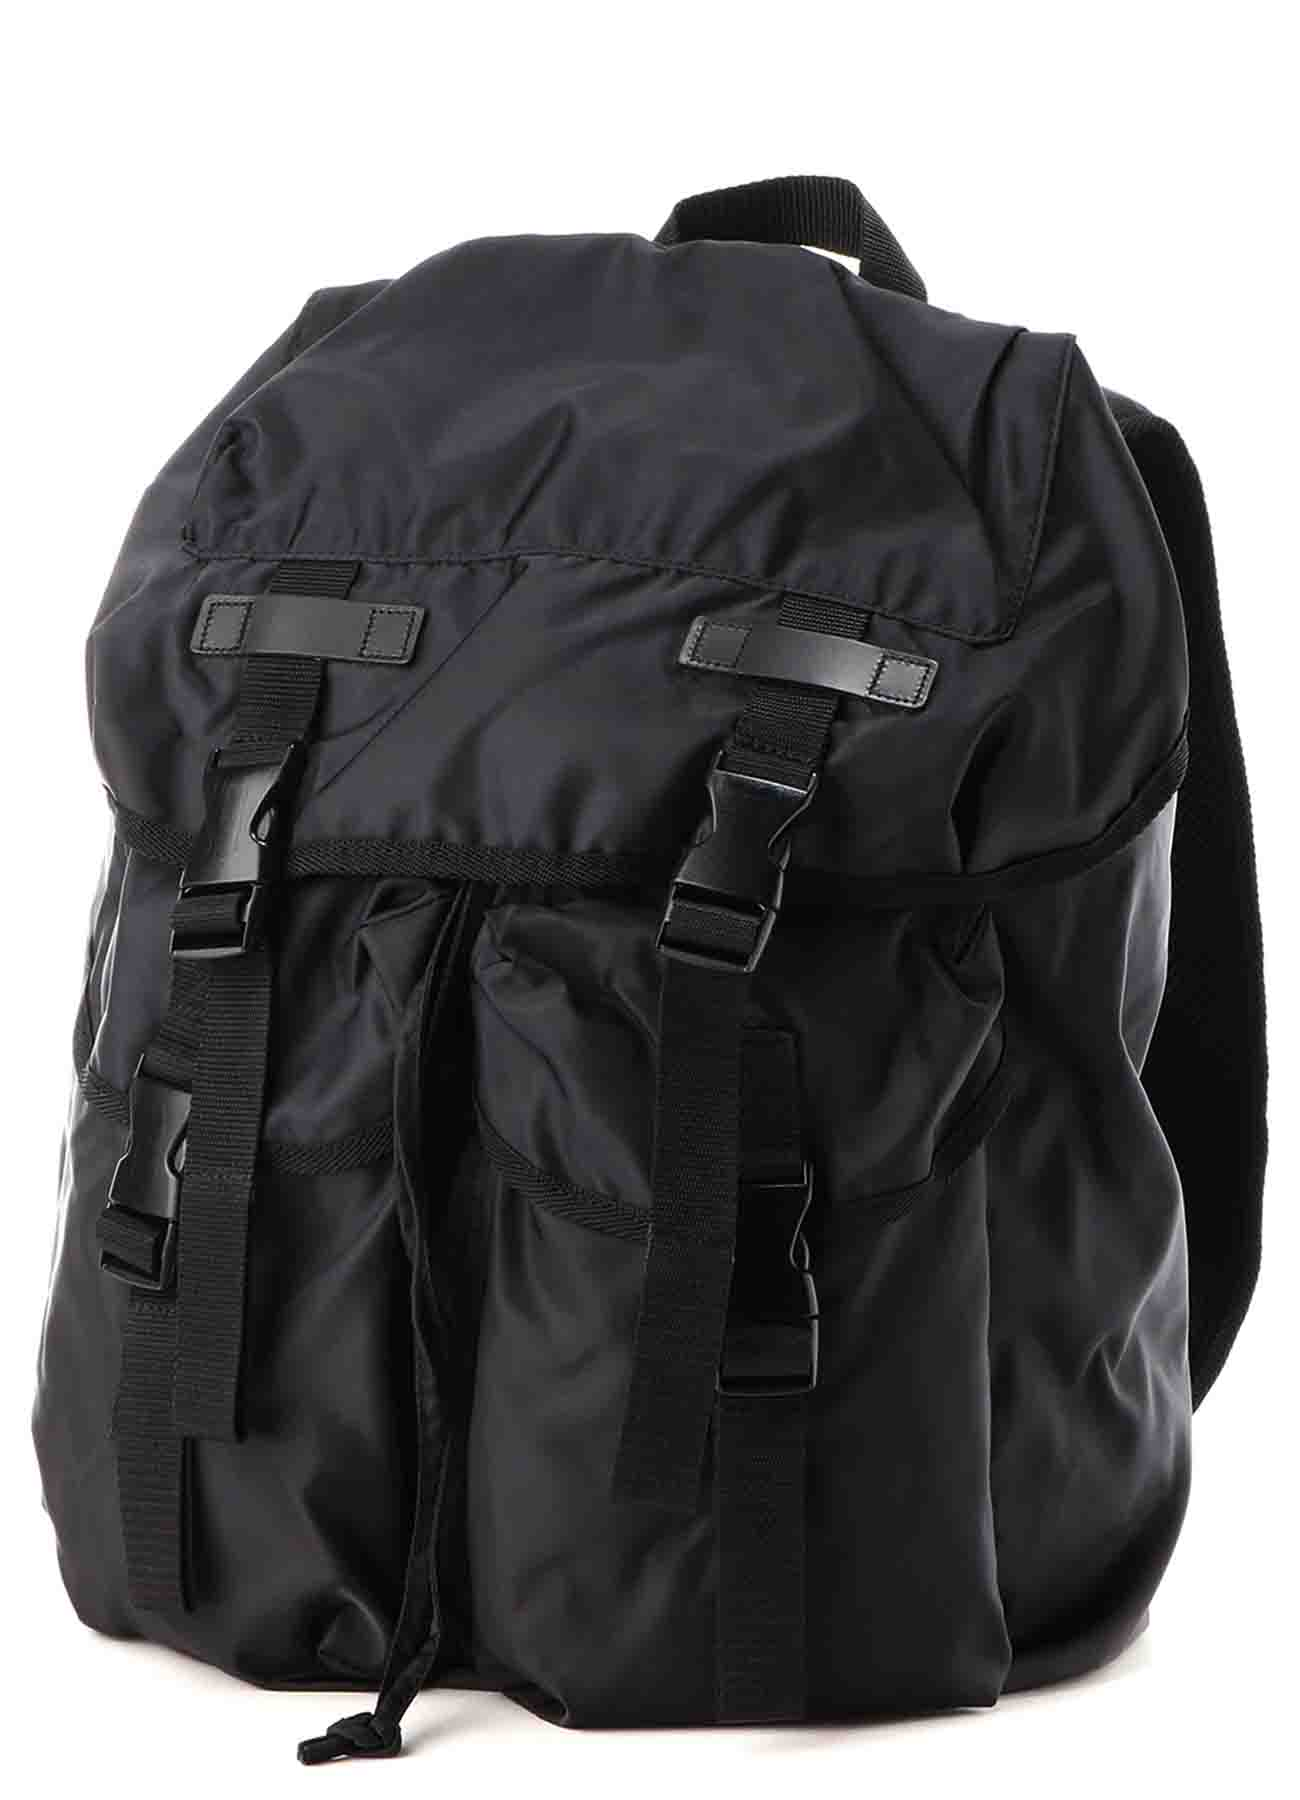 Soft Nylon and Owskin? Backpack